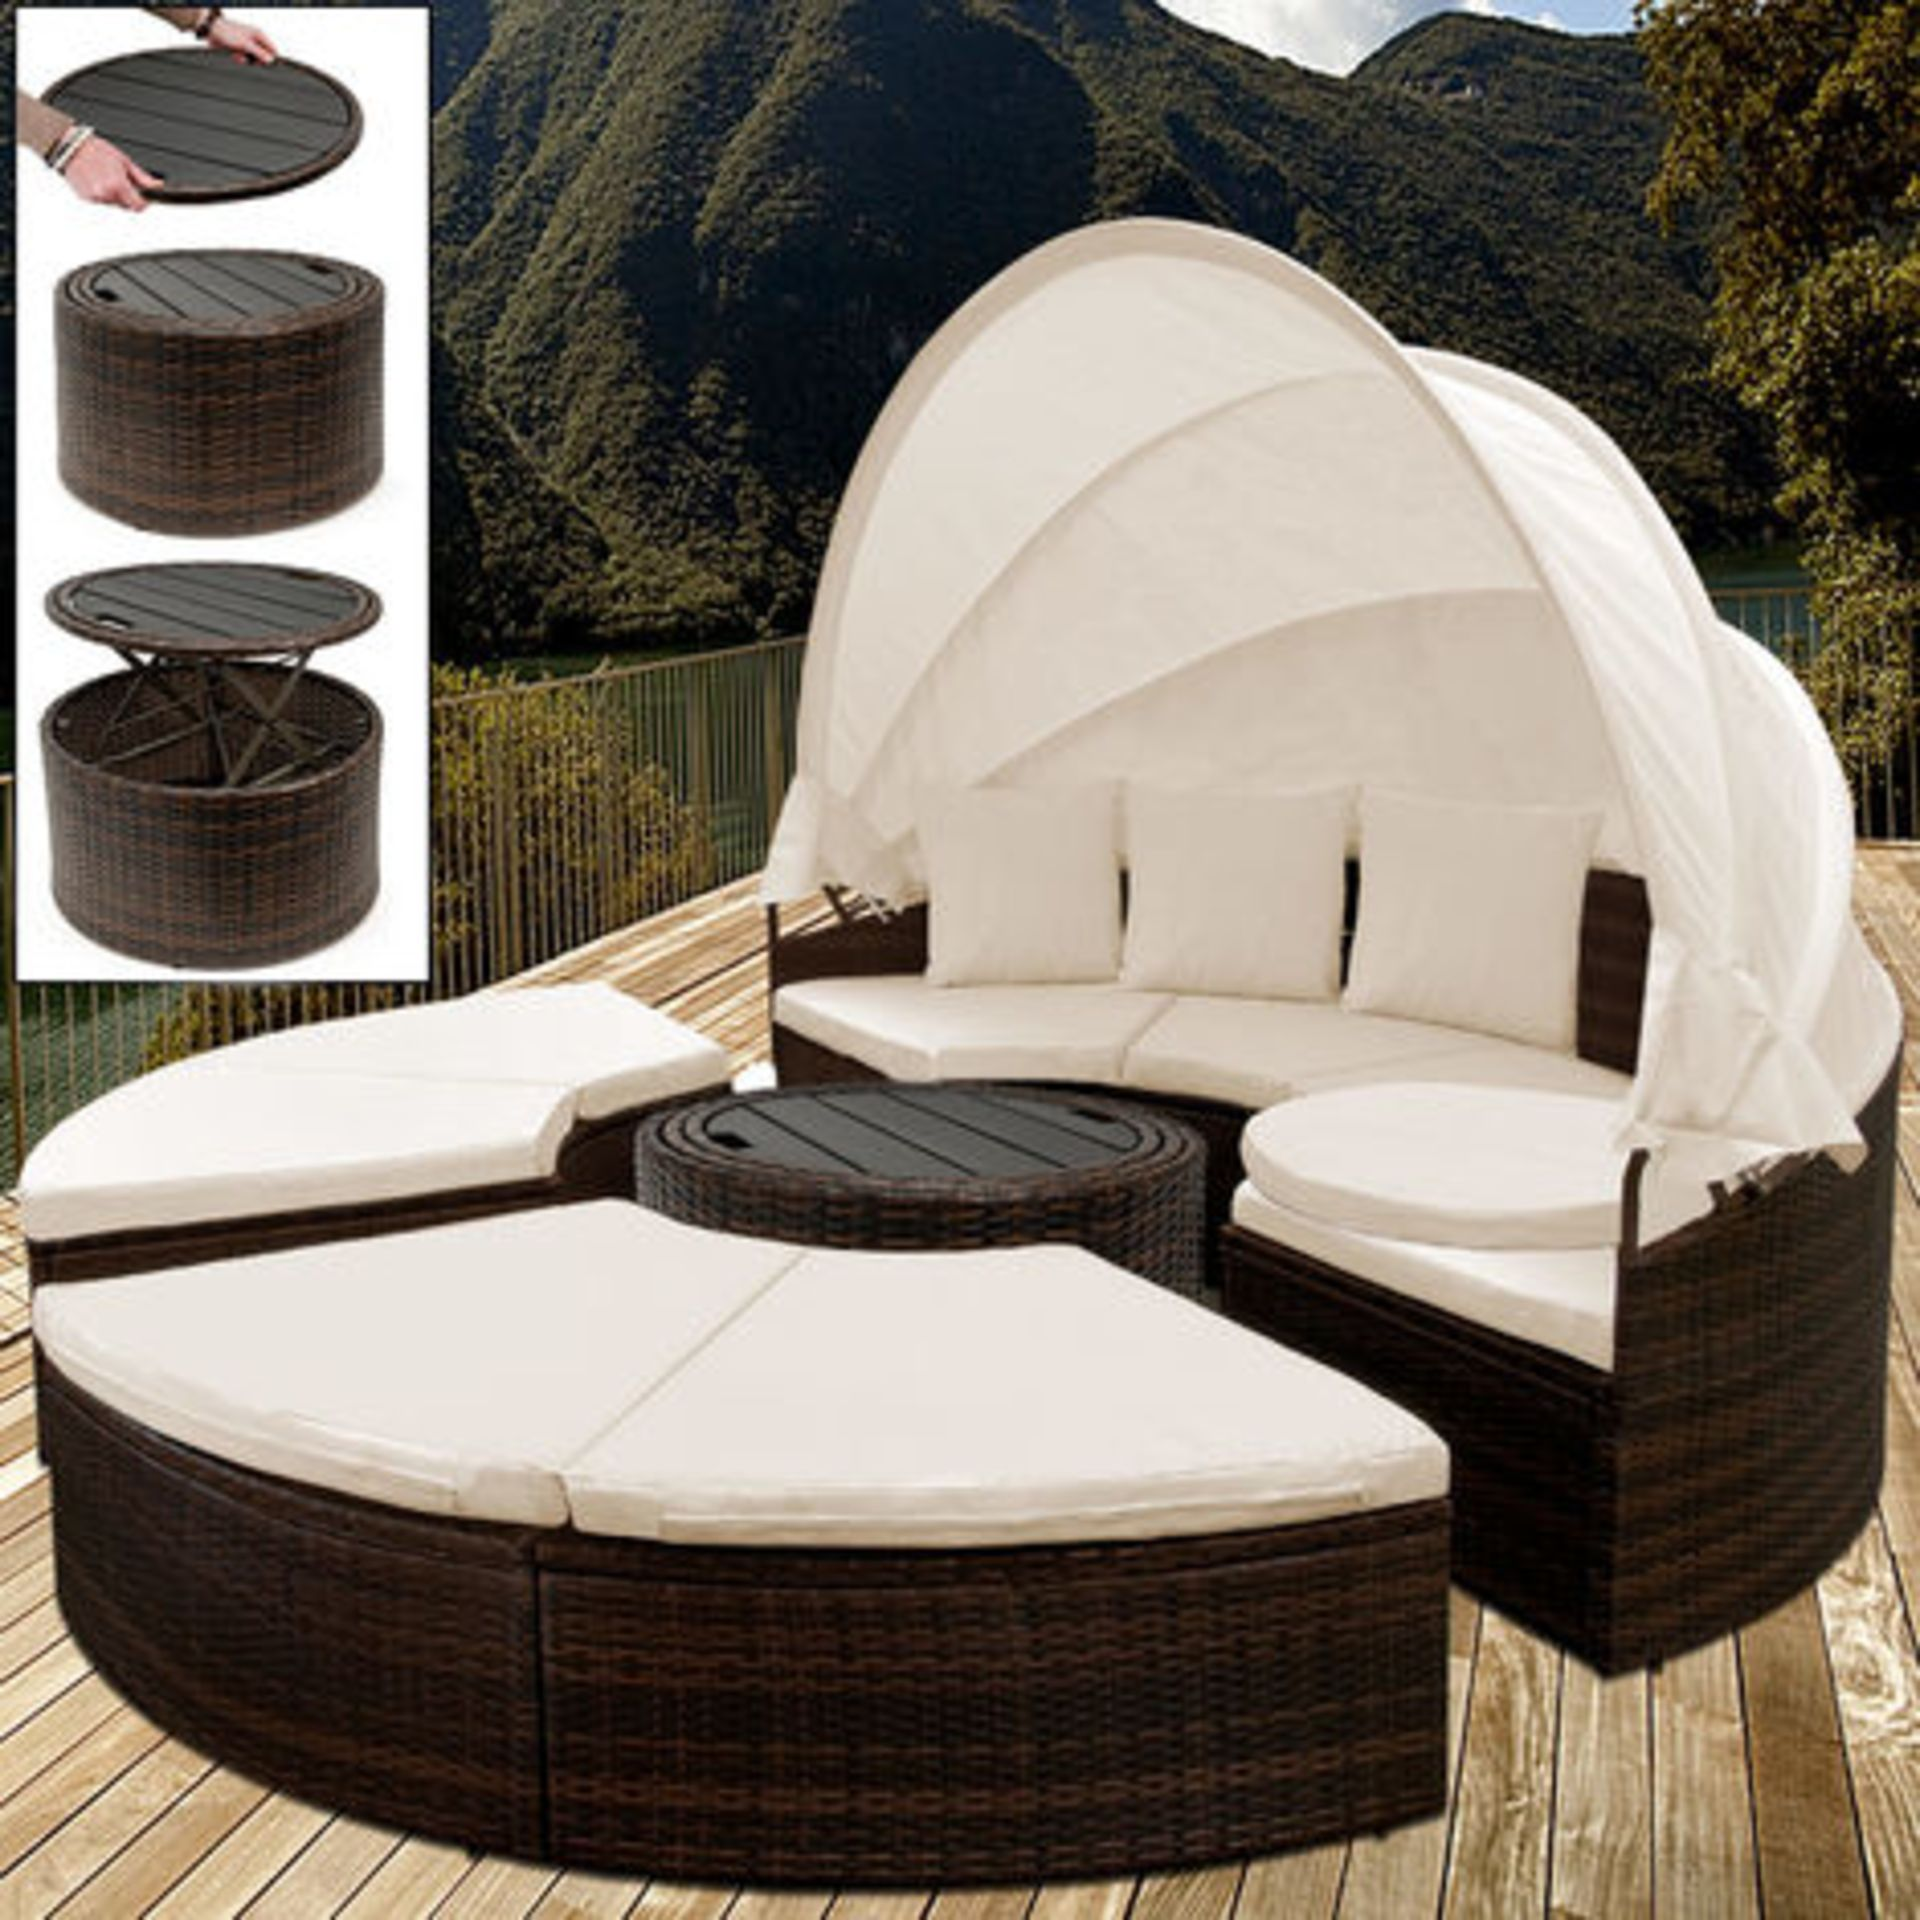 Lot 43004 - V Brand New Rattan Day Bed With Retractable Canopy & Telescopic Table - Includes Removable Water